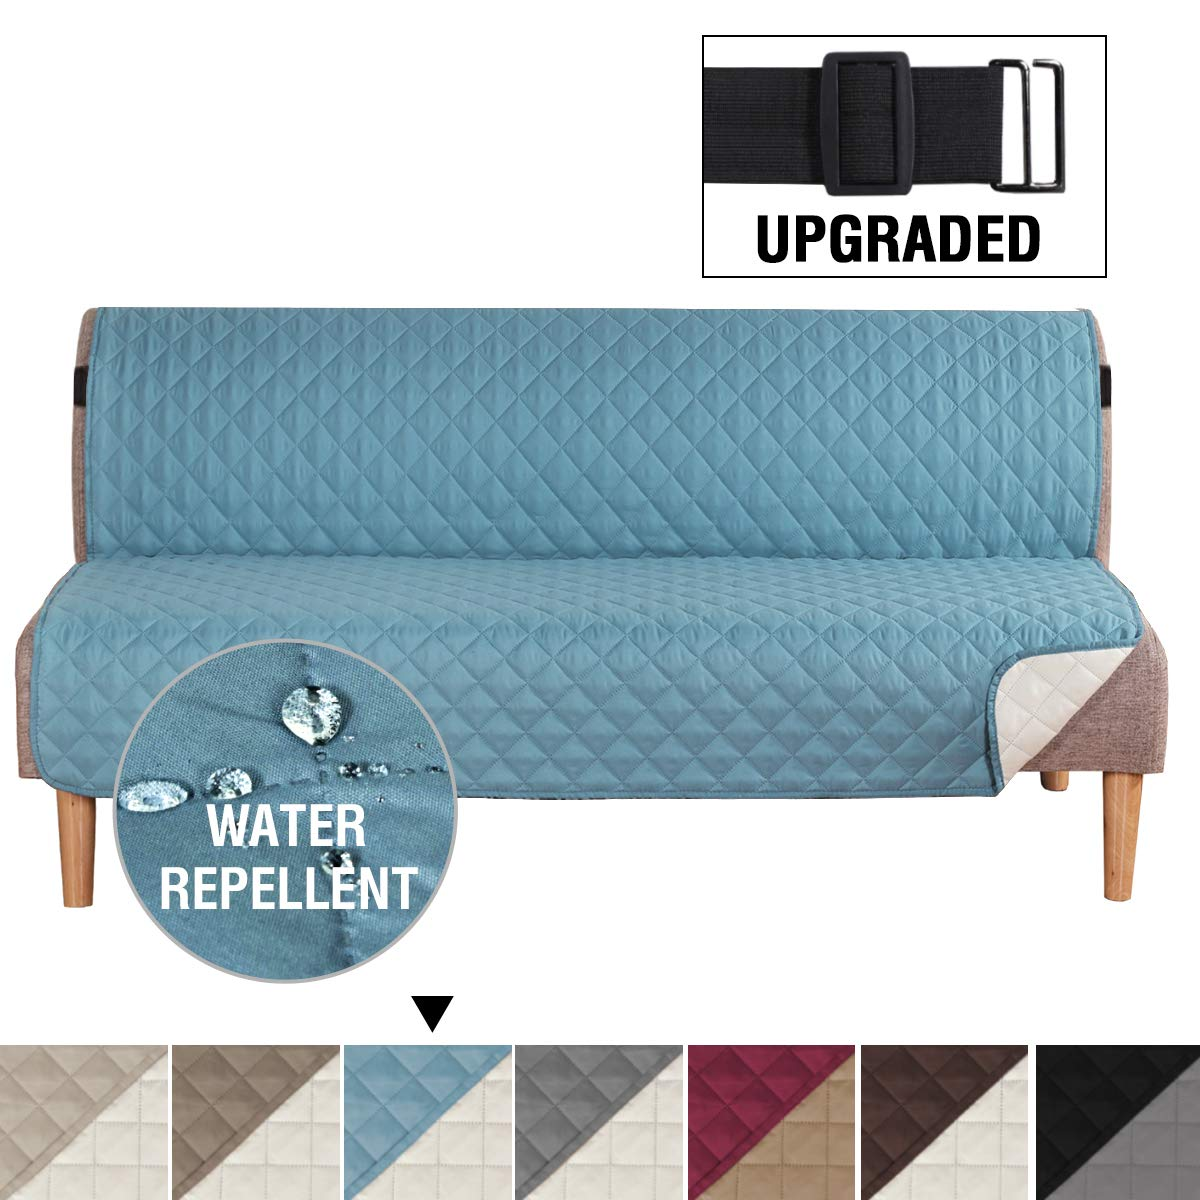 """H.VERSAILTEX Reversible Futon Slipcover Seat Width Up to 70"""" Washable Furniture Protector Water Repellent Futon Cover for Living Room 2"""" Elastic Strap Anti-Slip Futon Cover for Dogs Smoke Blue/Beige"""